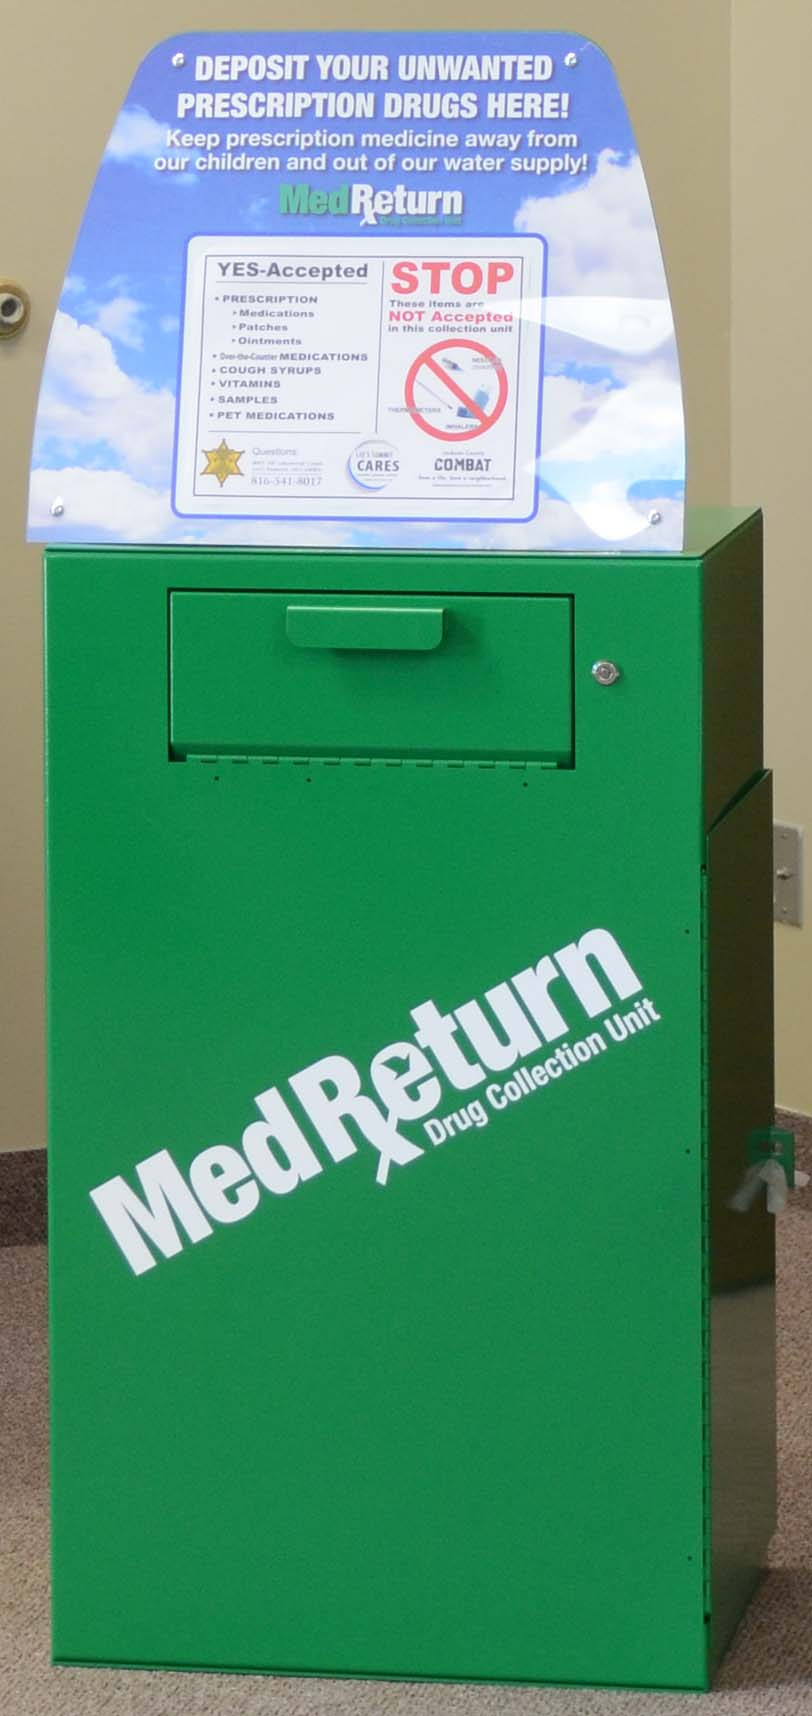 MedReturn Box